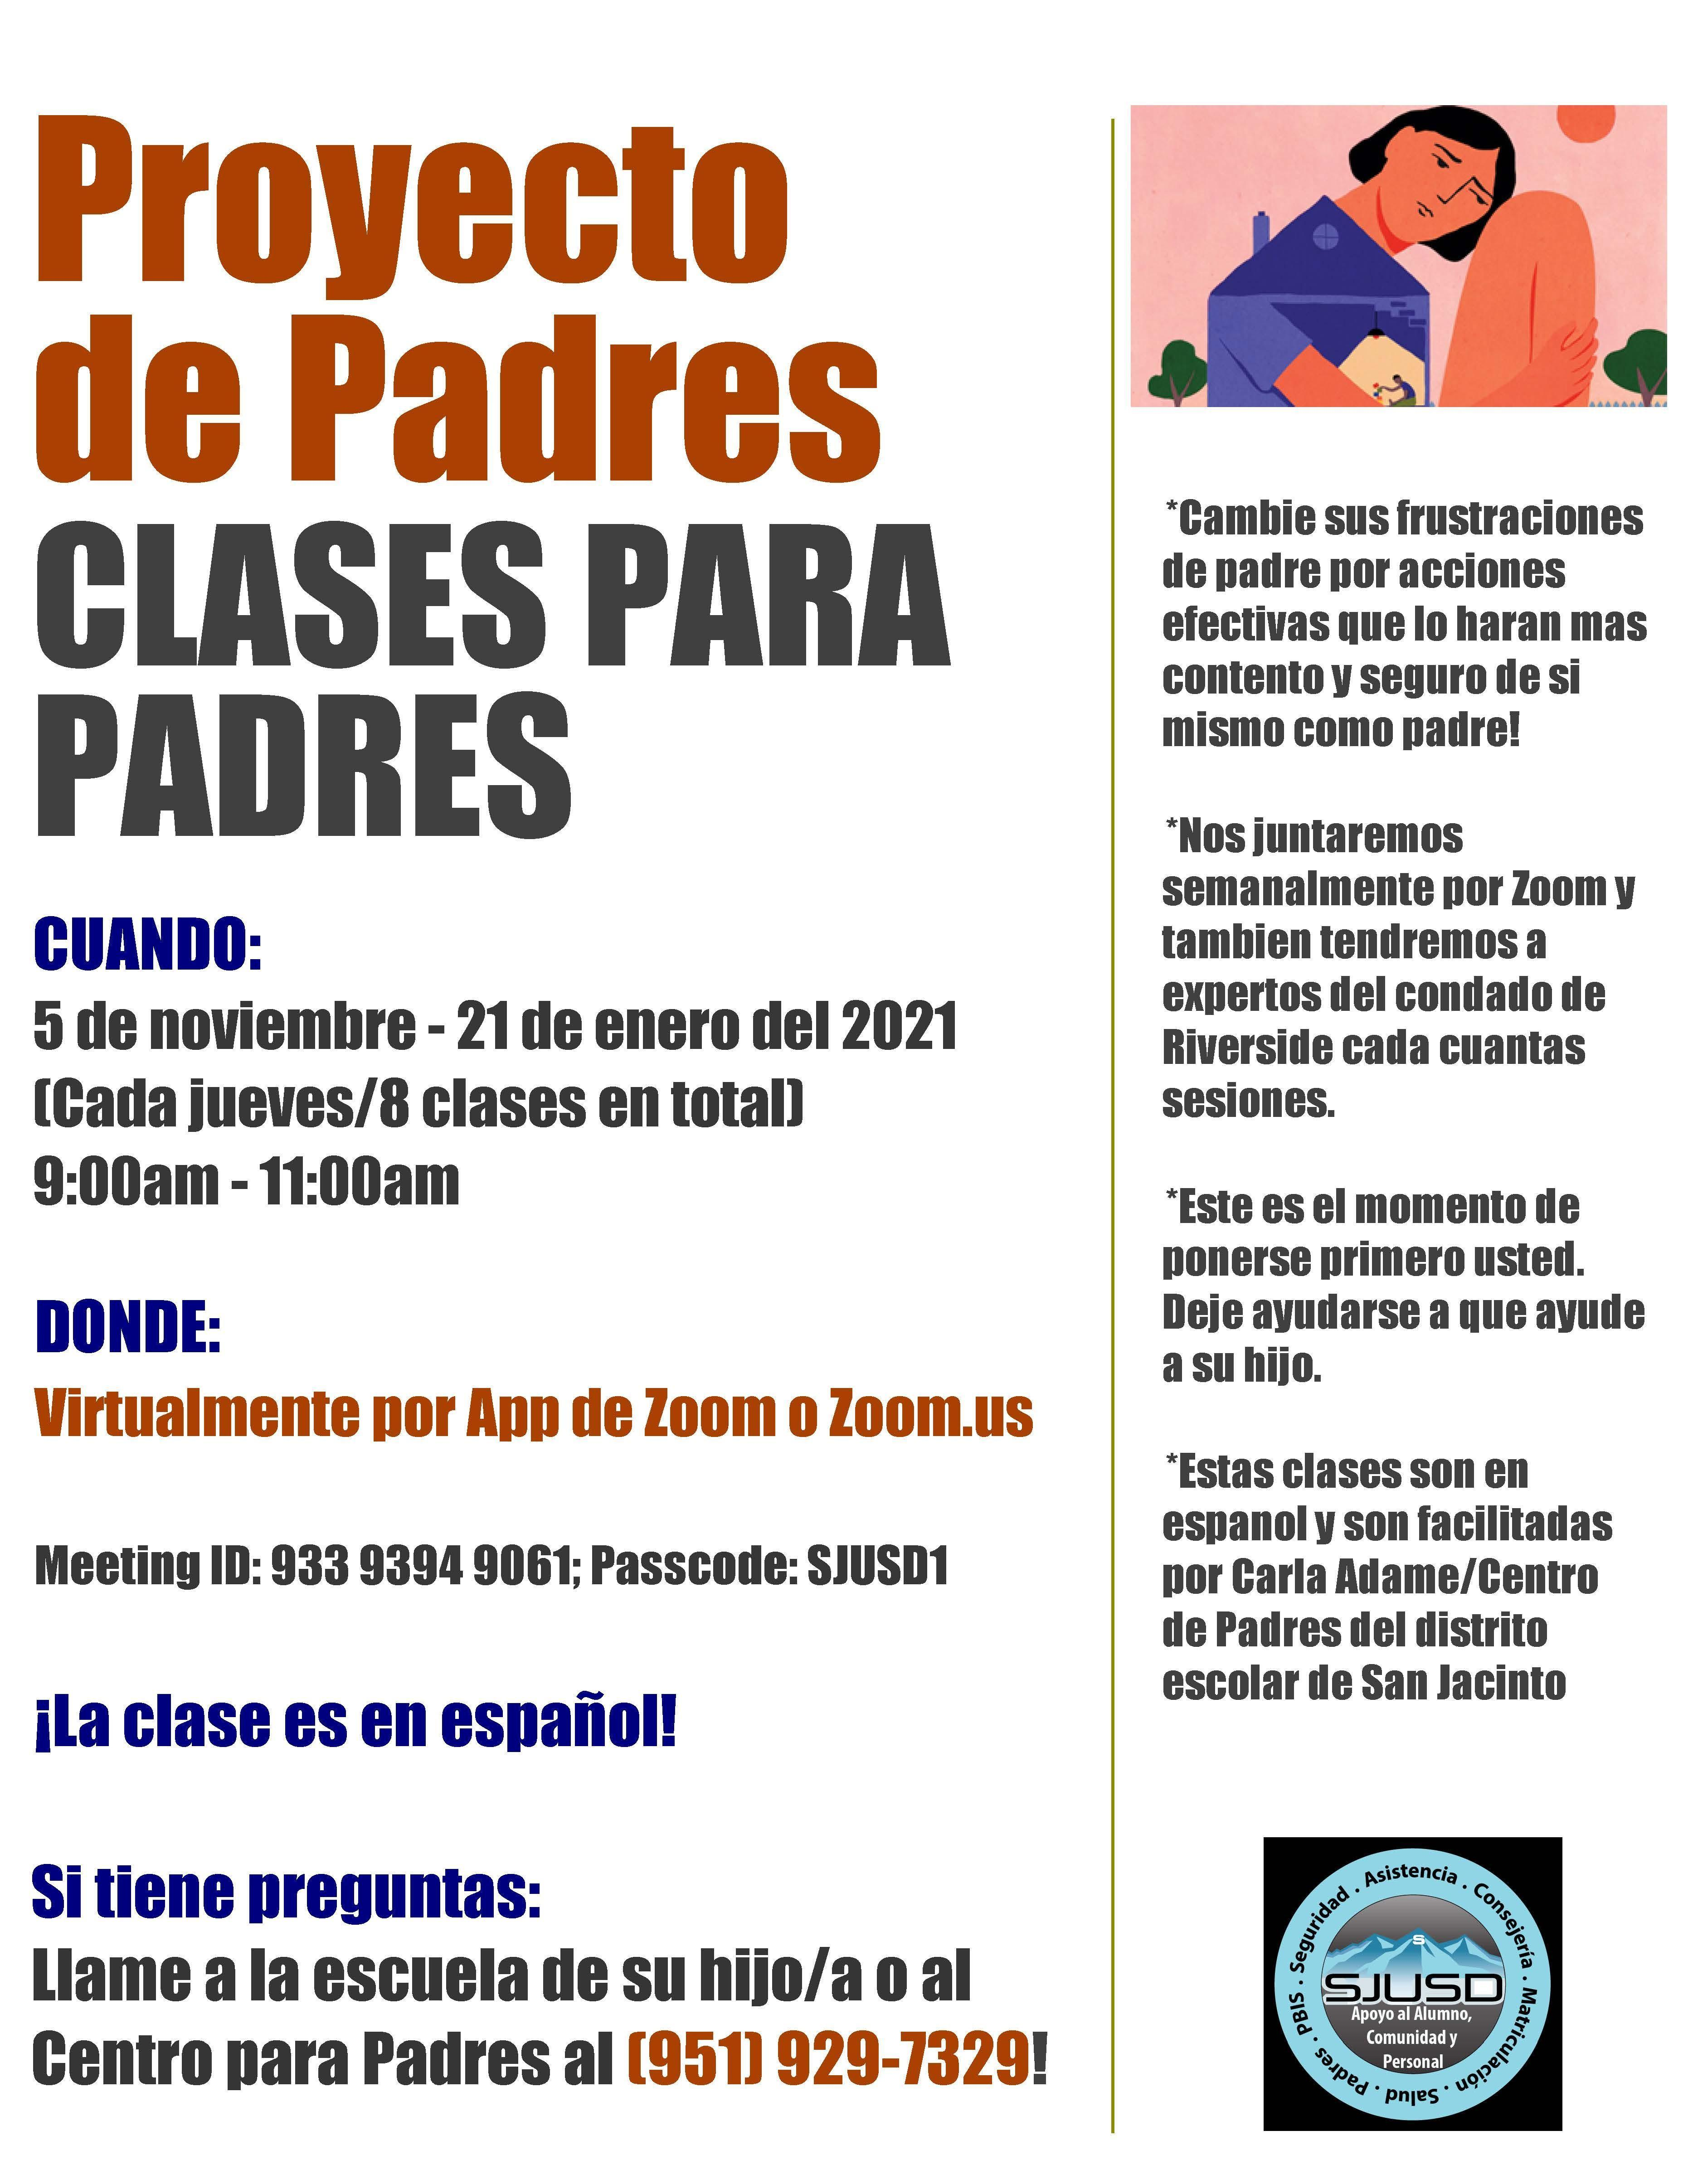 Proyecto de Padres Clases Para Padres